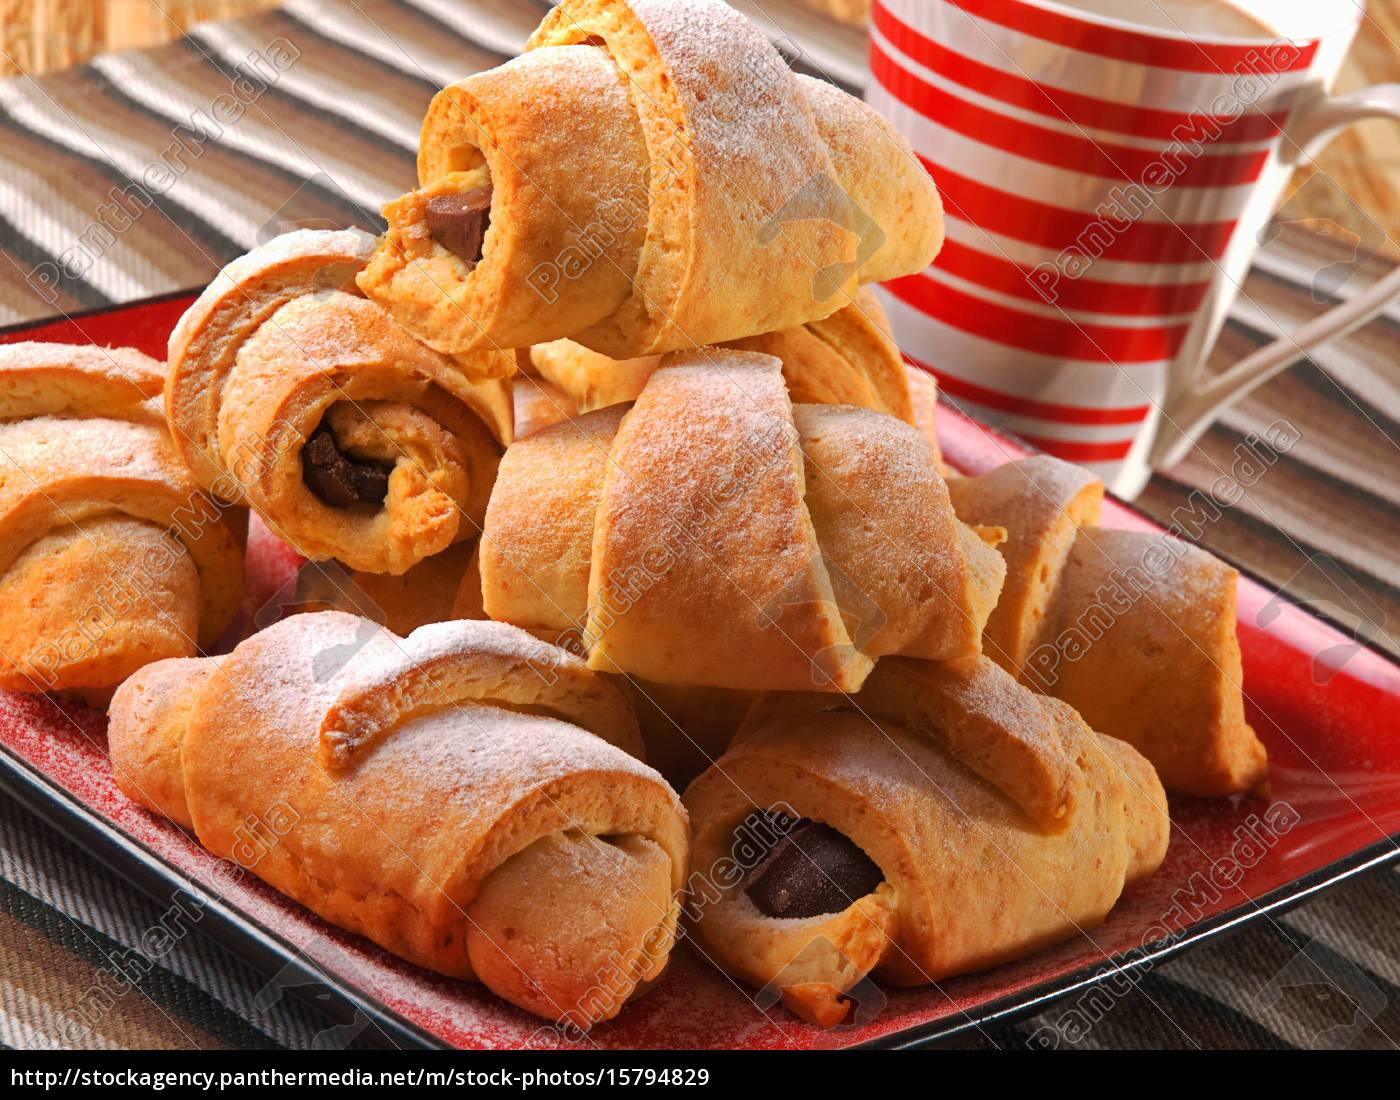 homemade, croissants, homemade, croissants, homemade, croissants, homemade, croissants - 15794829